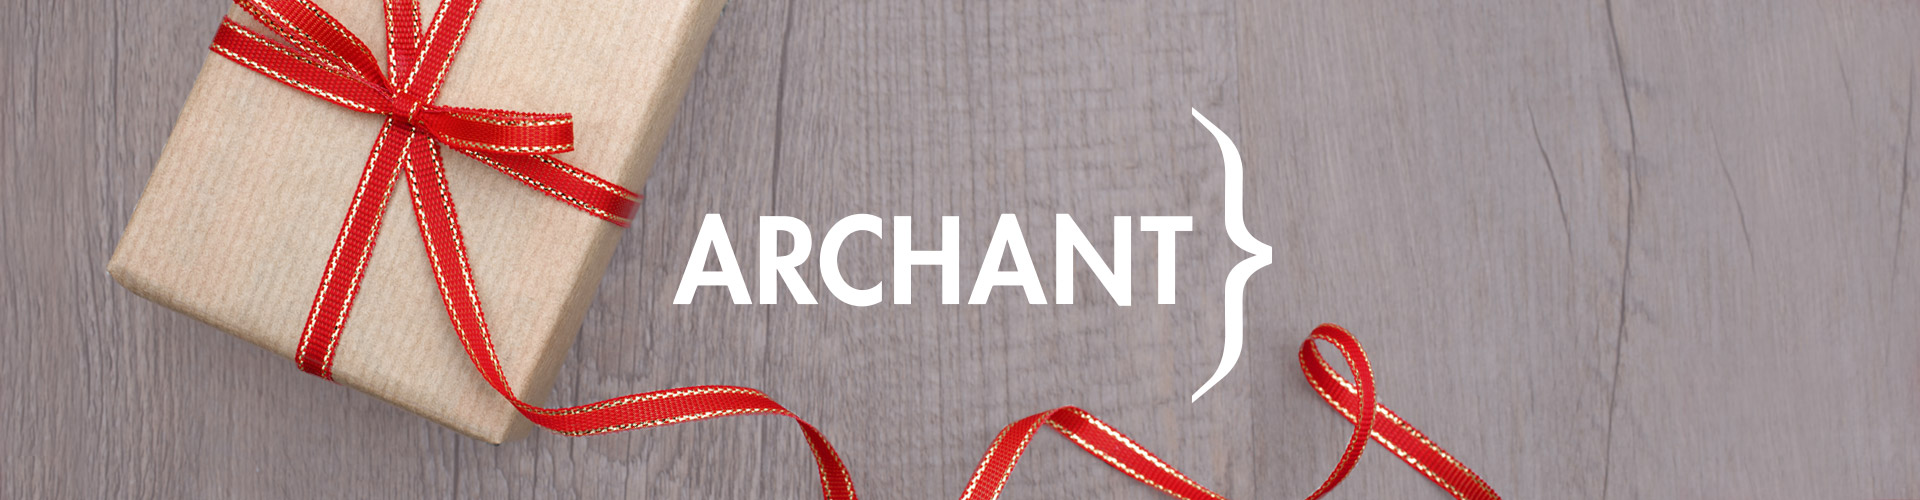 How Archant are Promoting Their Digital Only Christmas Campaign